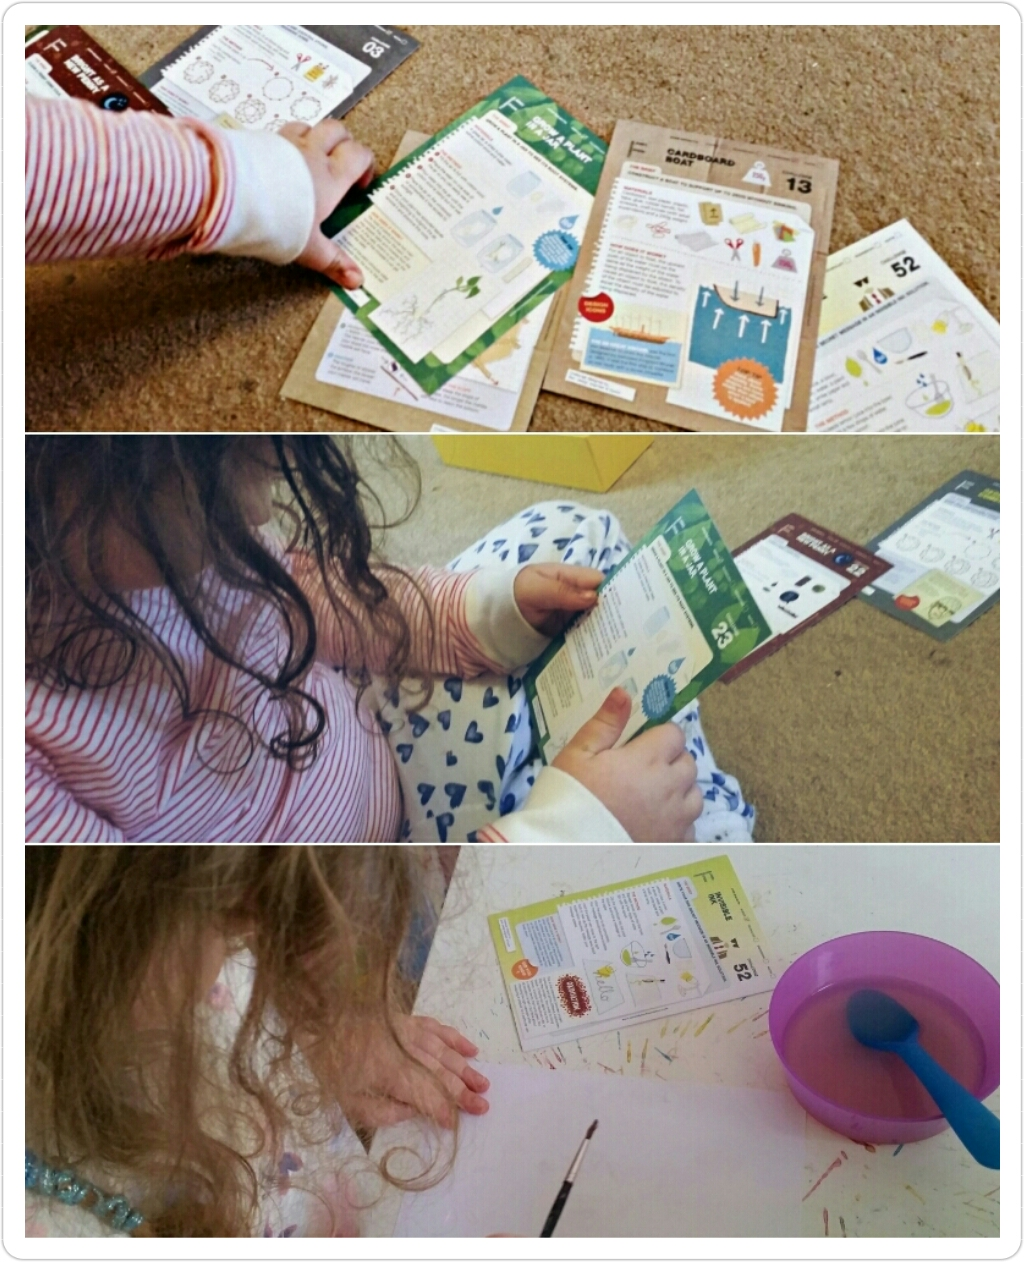 100 Days of Home Ed #LoveHomeEd – Day 25 (Our Round-Up So Far)